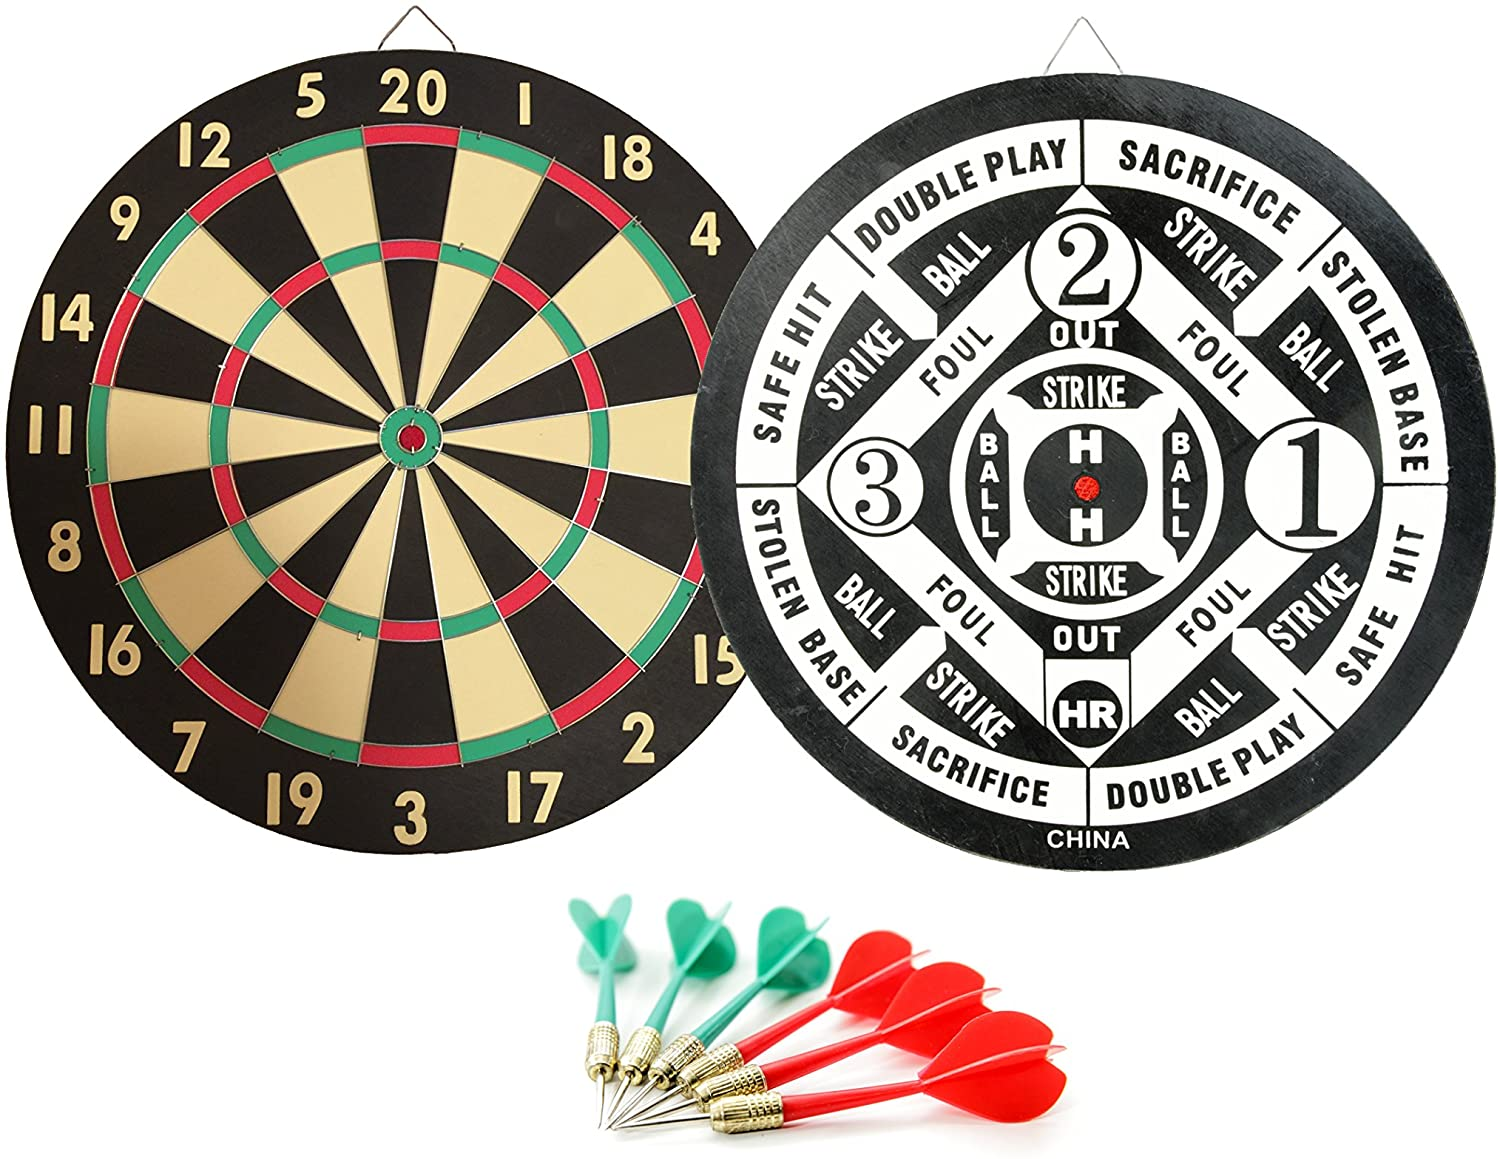 How to Play Baseball Darts: All You Need to Know